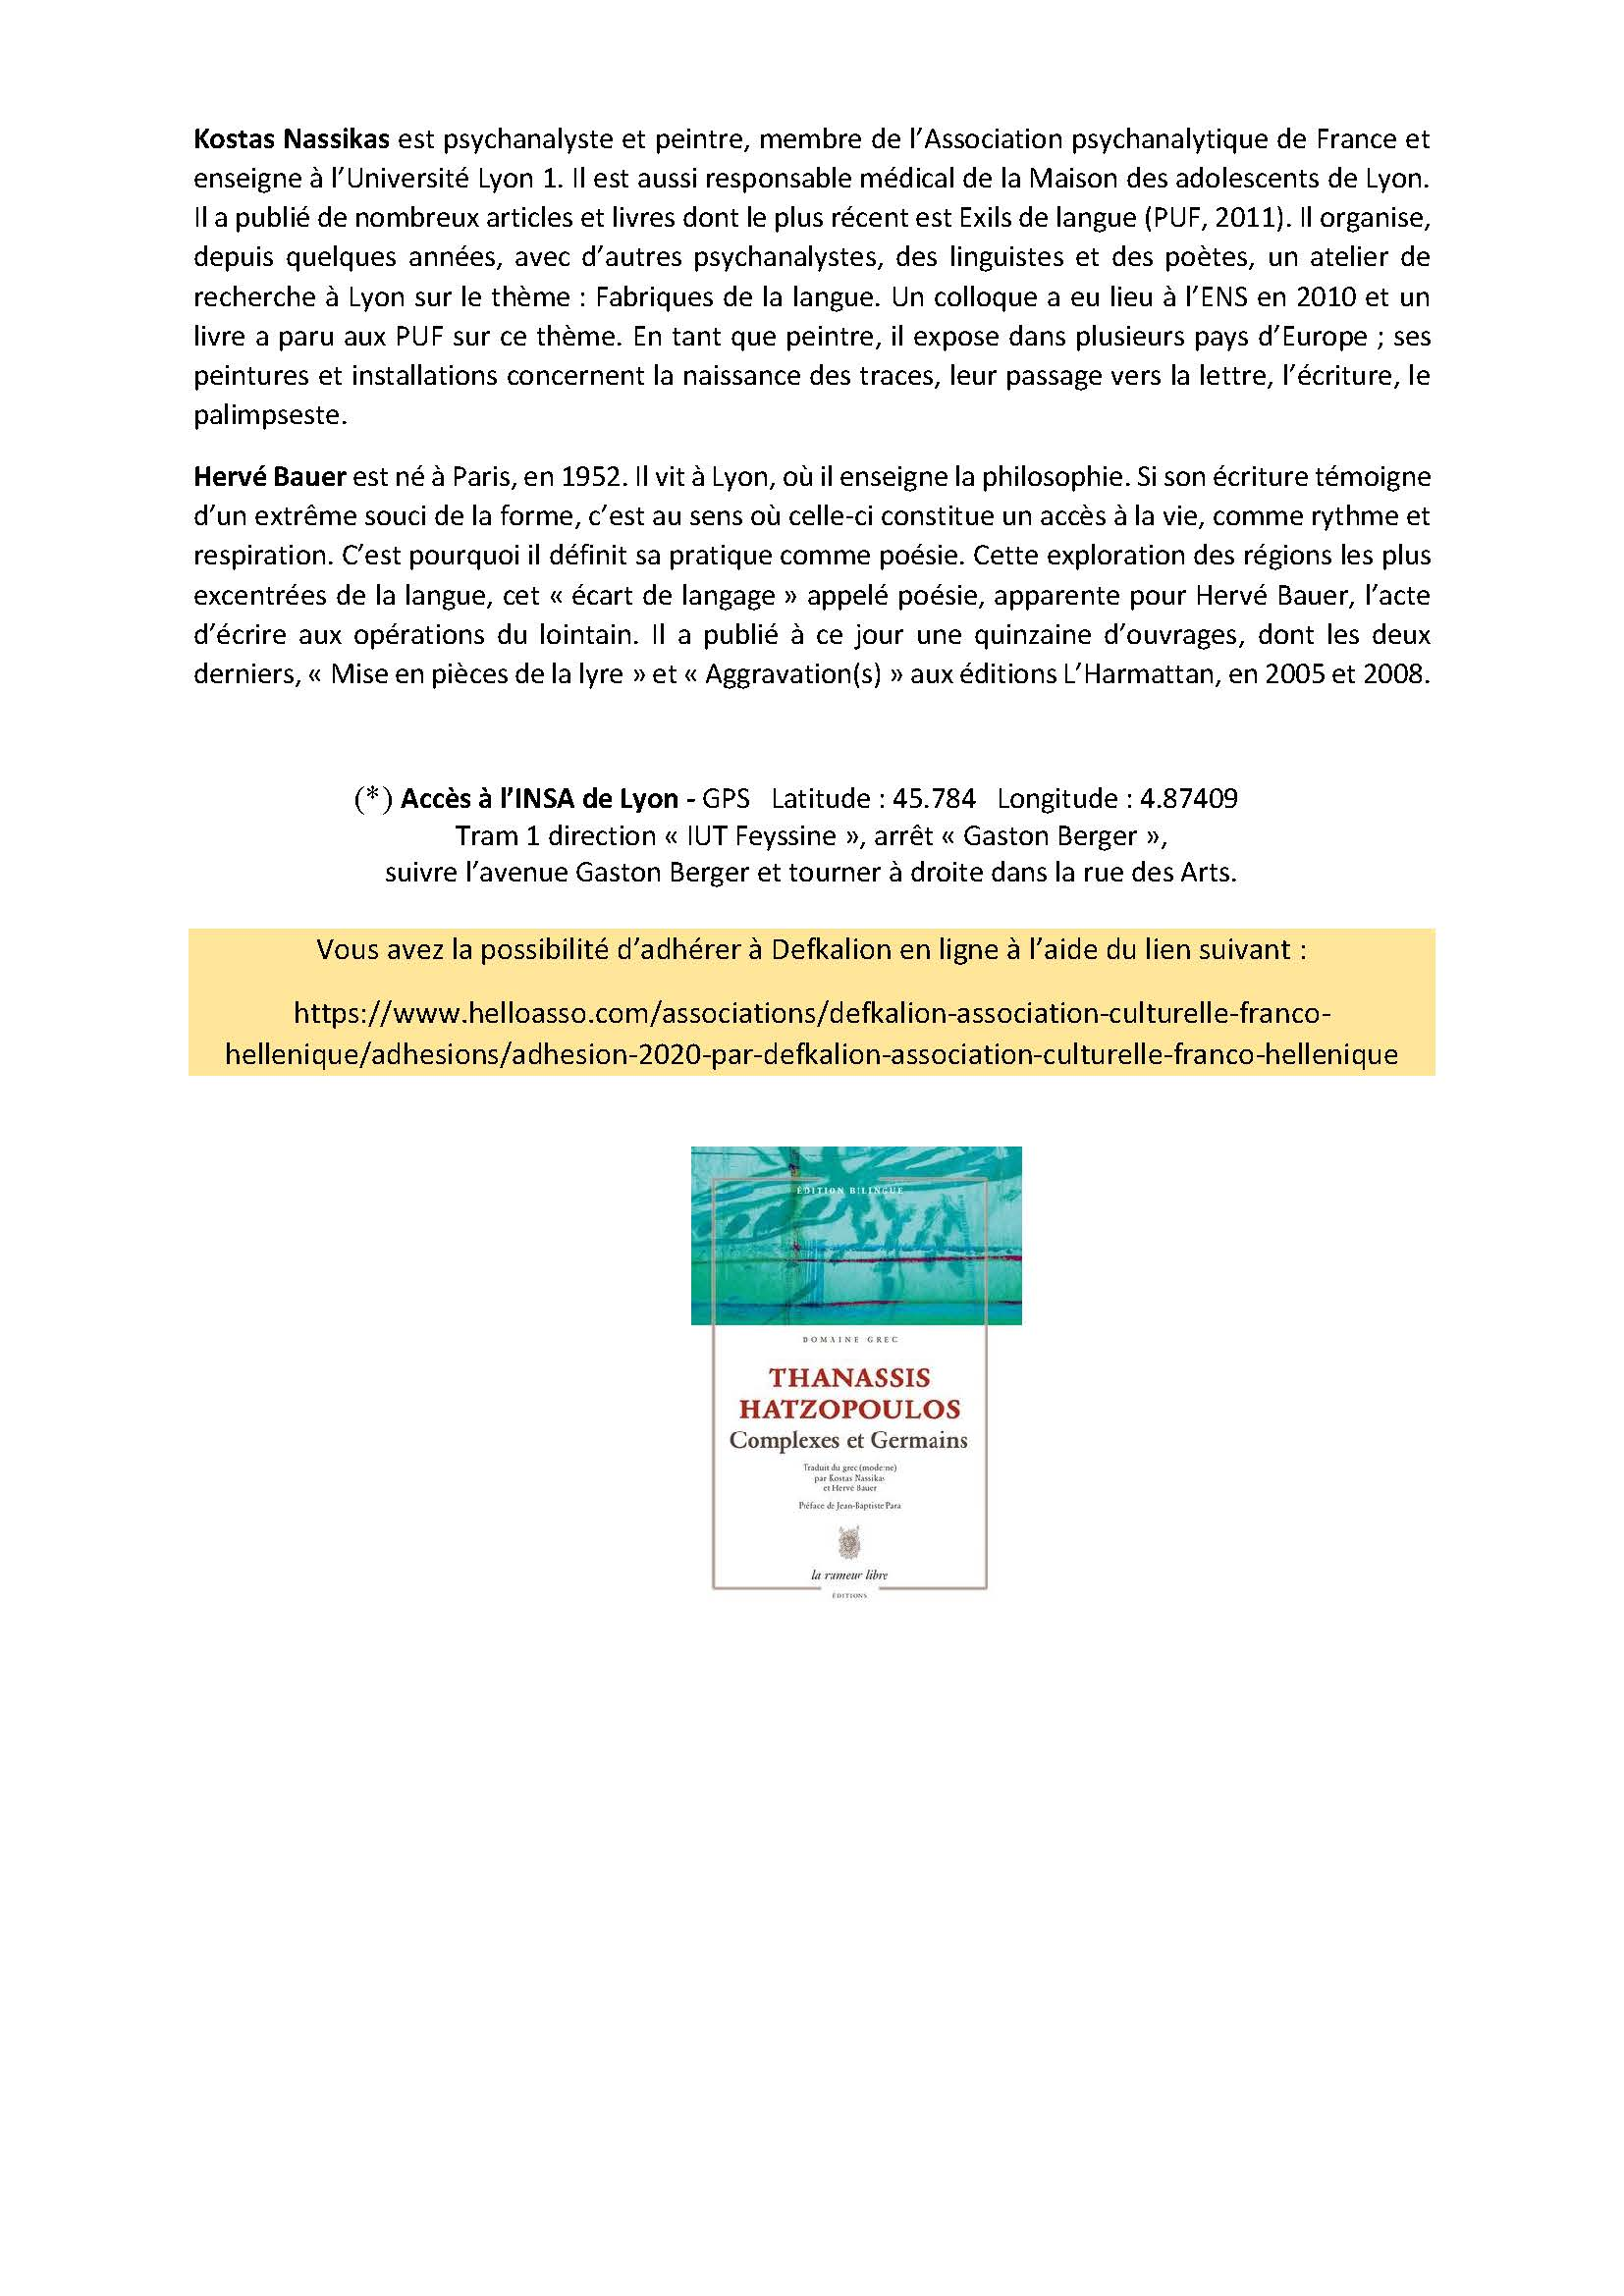 Thanassis_Hatzopoulos_annonce_Page_2